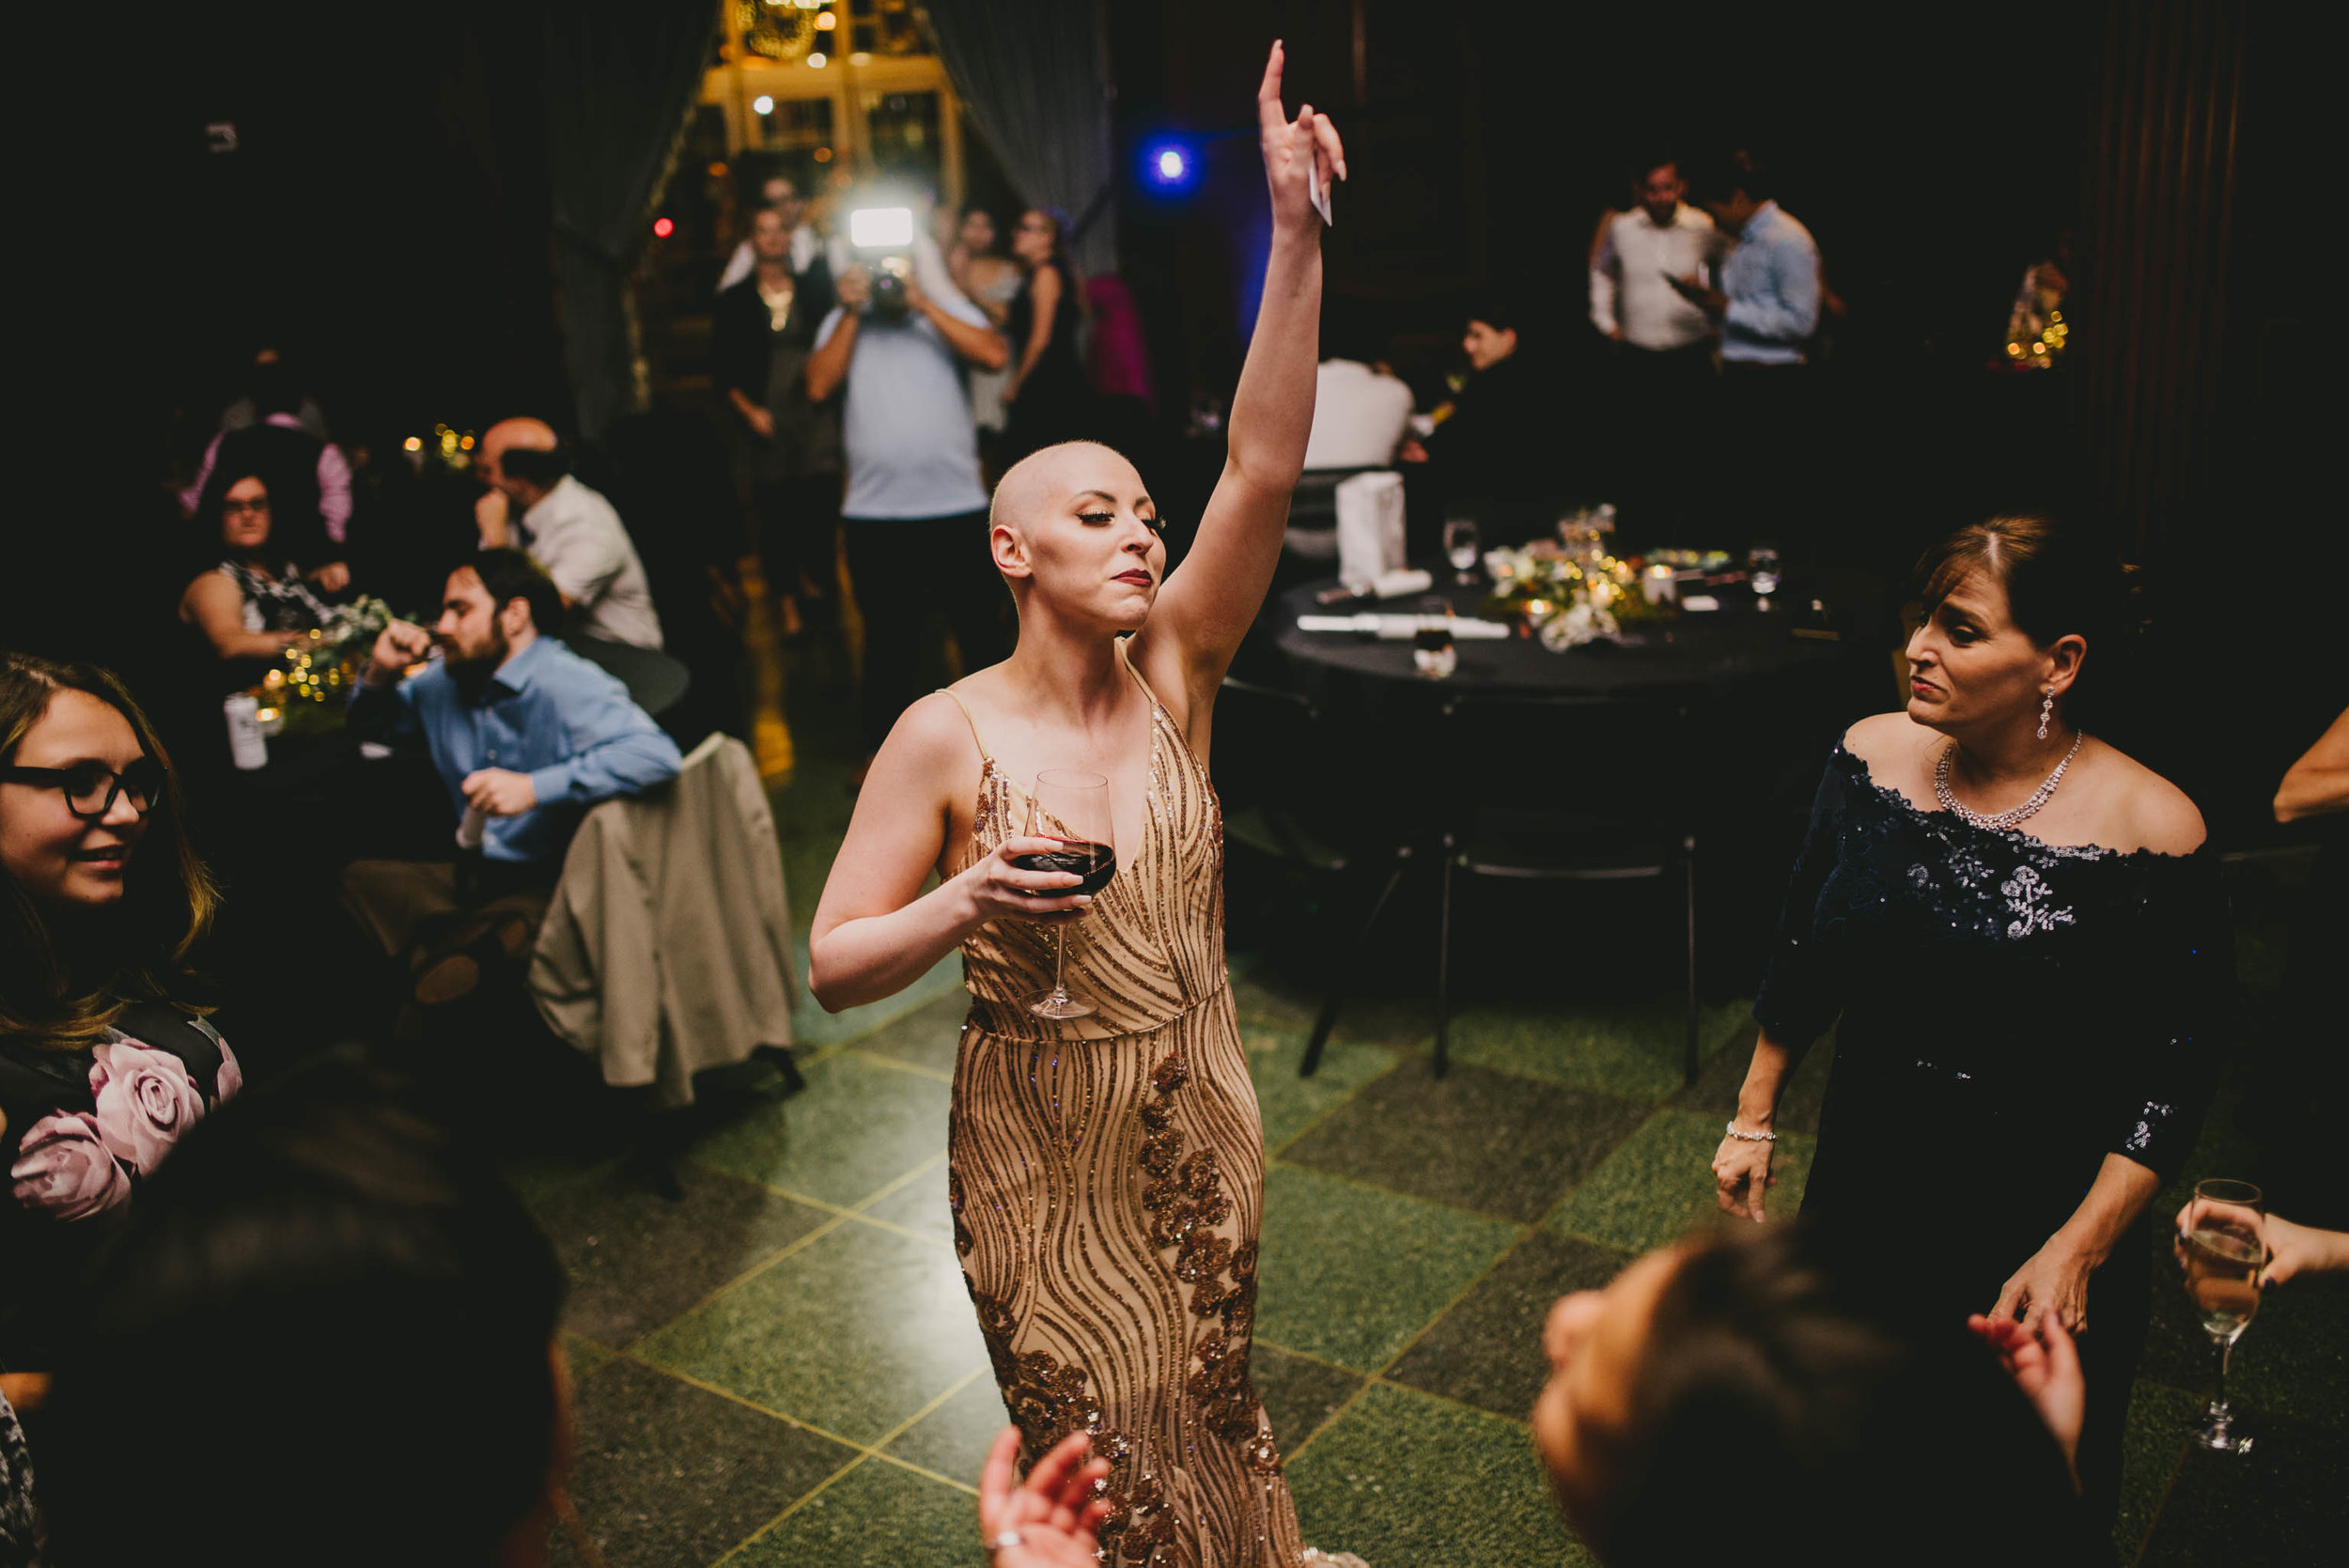 21c-hotel-durham-offbeat-wedding-bridesmaid-dancing.jpg